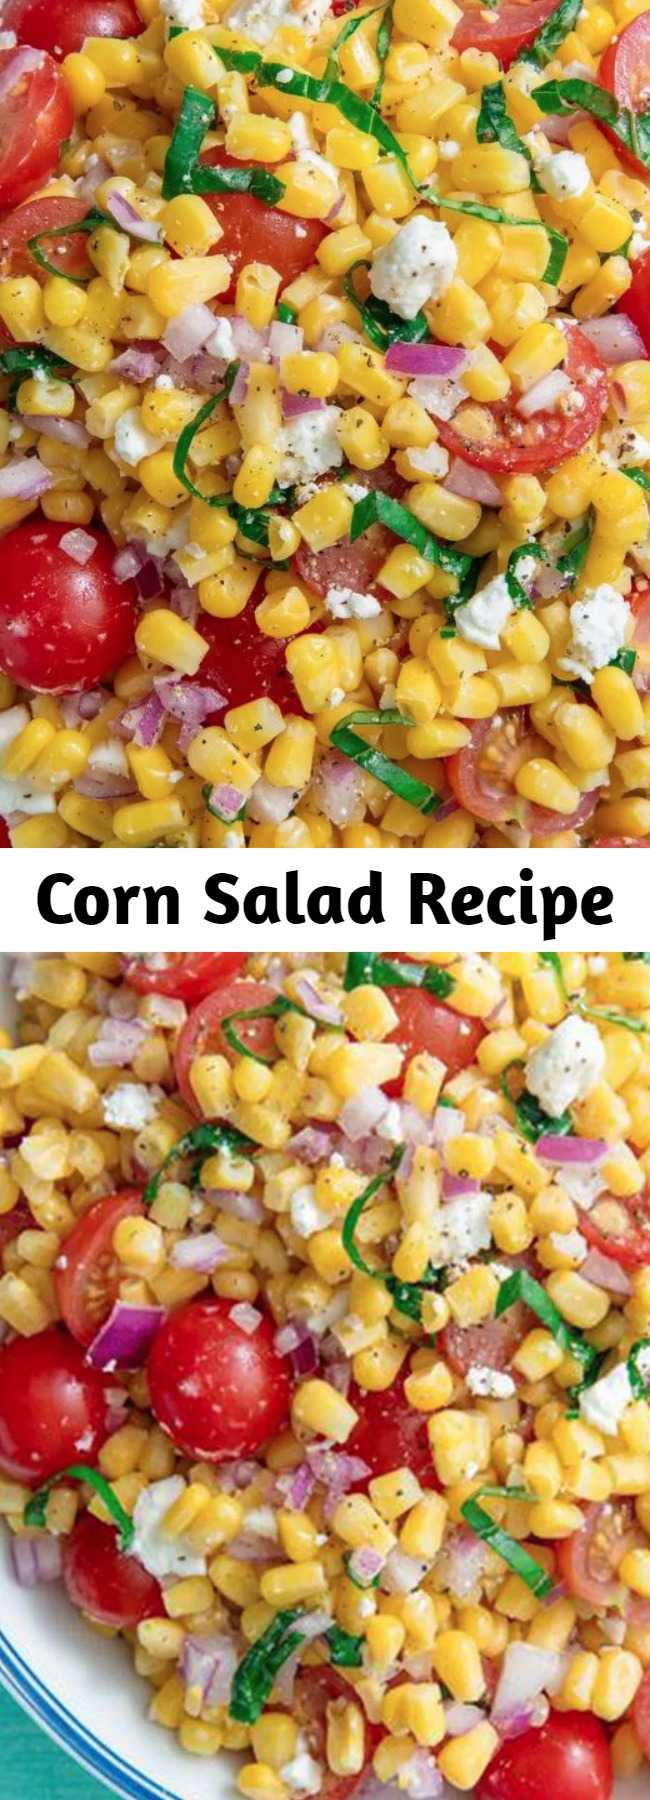 Corn Salad Recipe - Corn Salad makes the perfect summer dish for picnics, potlucks, or BBQs. So easy to make with no cooking involved! The quintessential summer salad. #easyrecipe #corn #summer #sidedish #salad